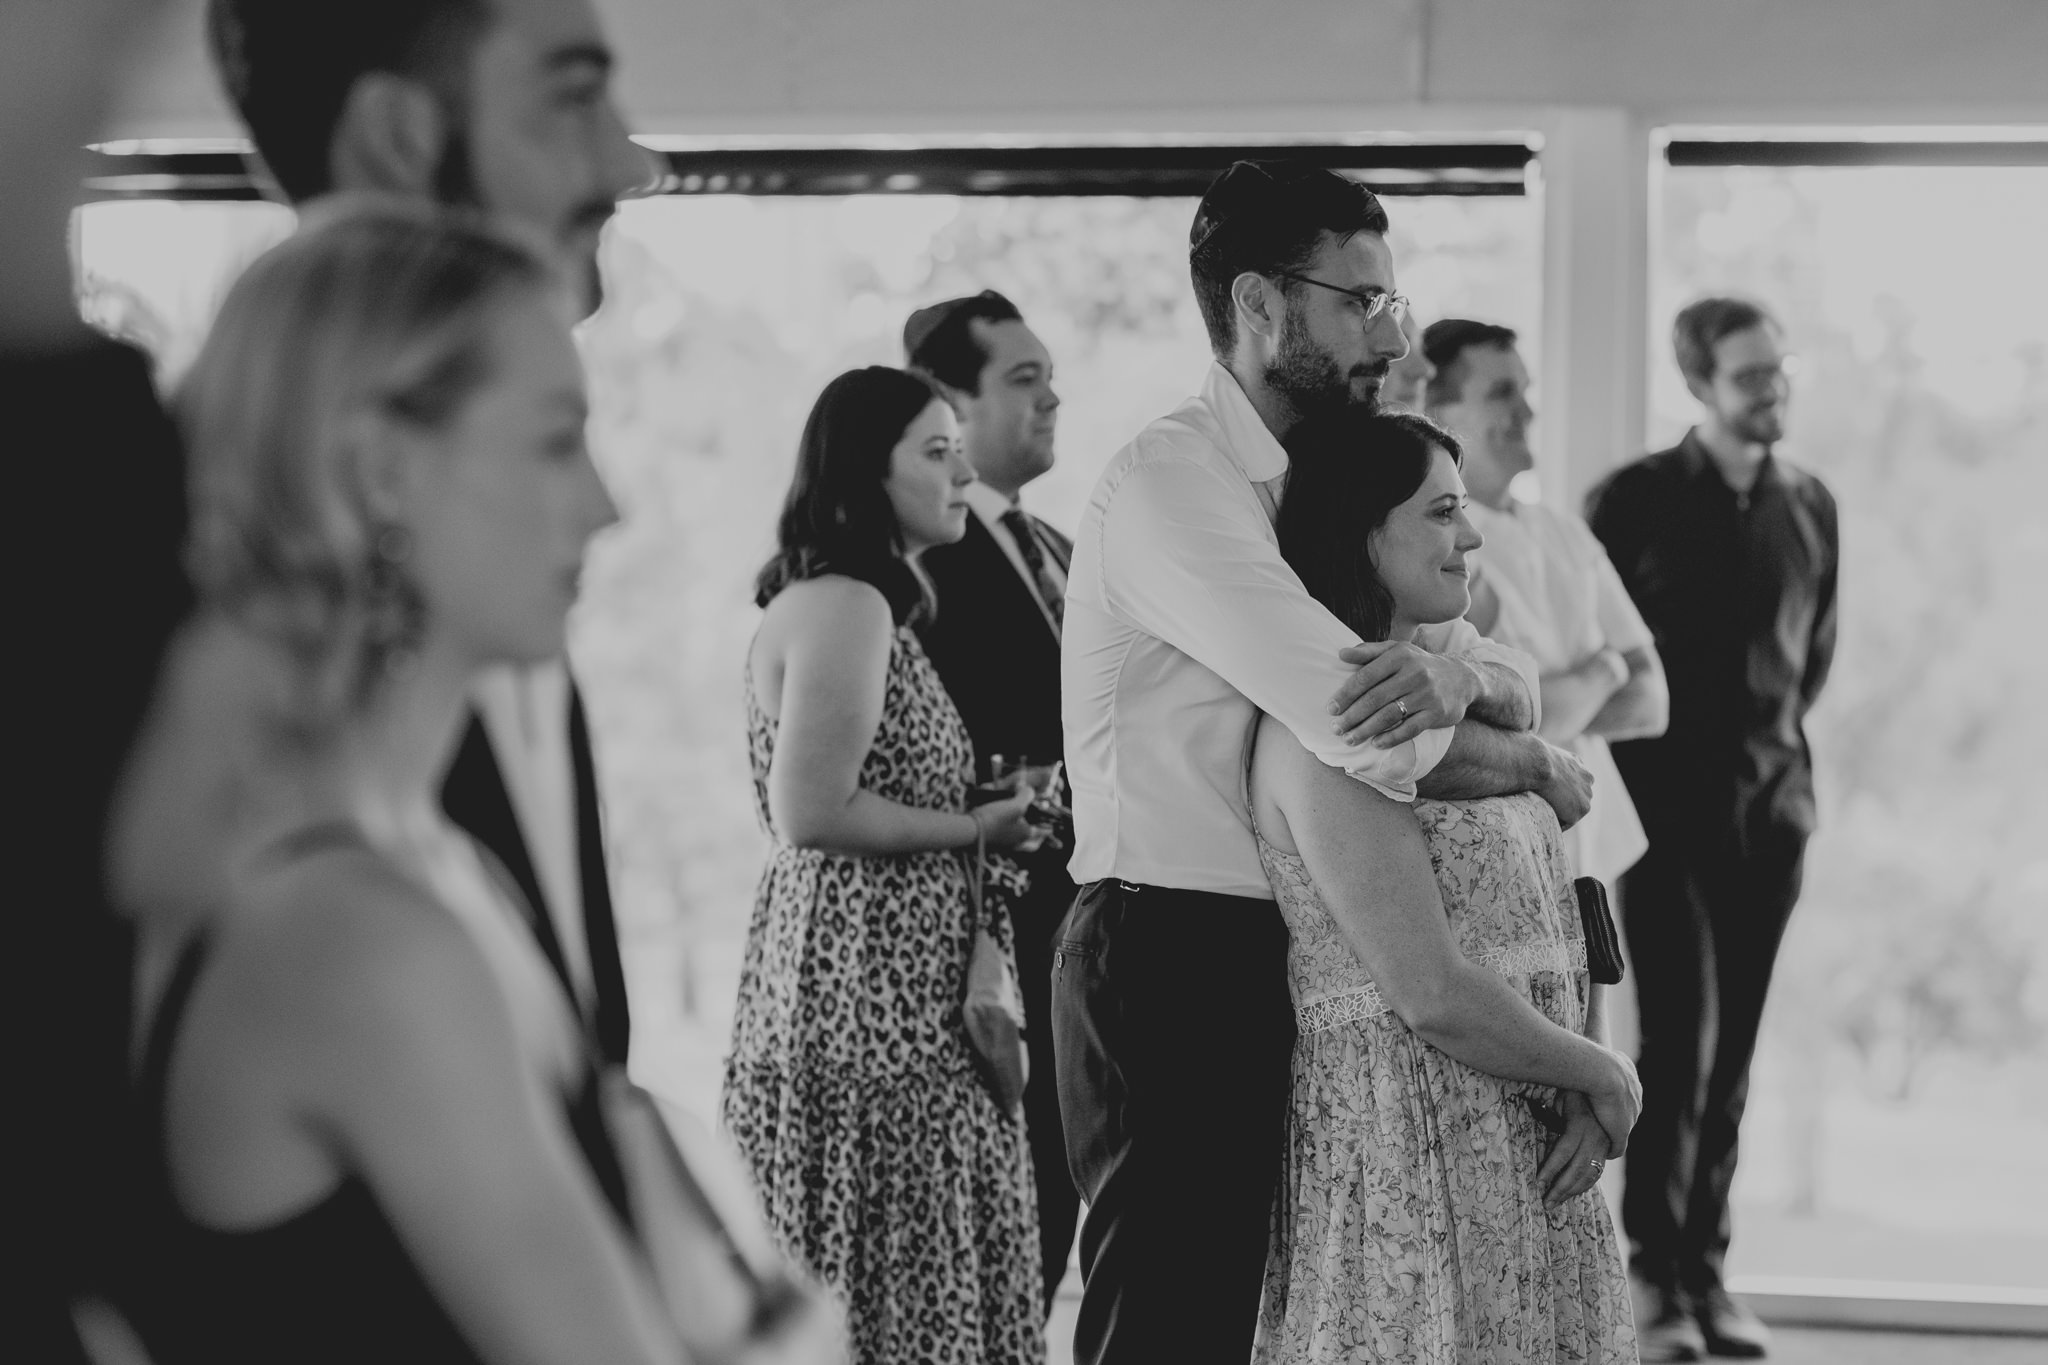 Two guests hug each other as they watch a wedding